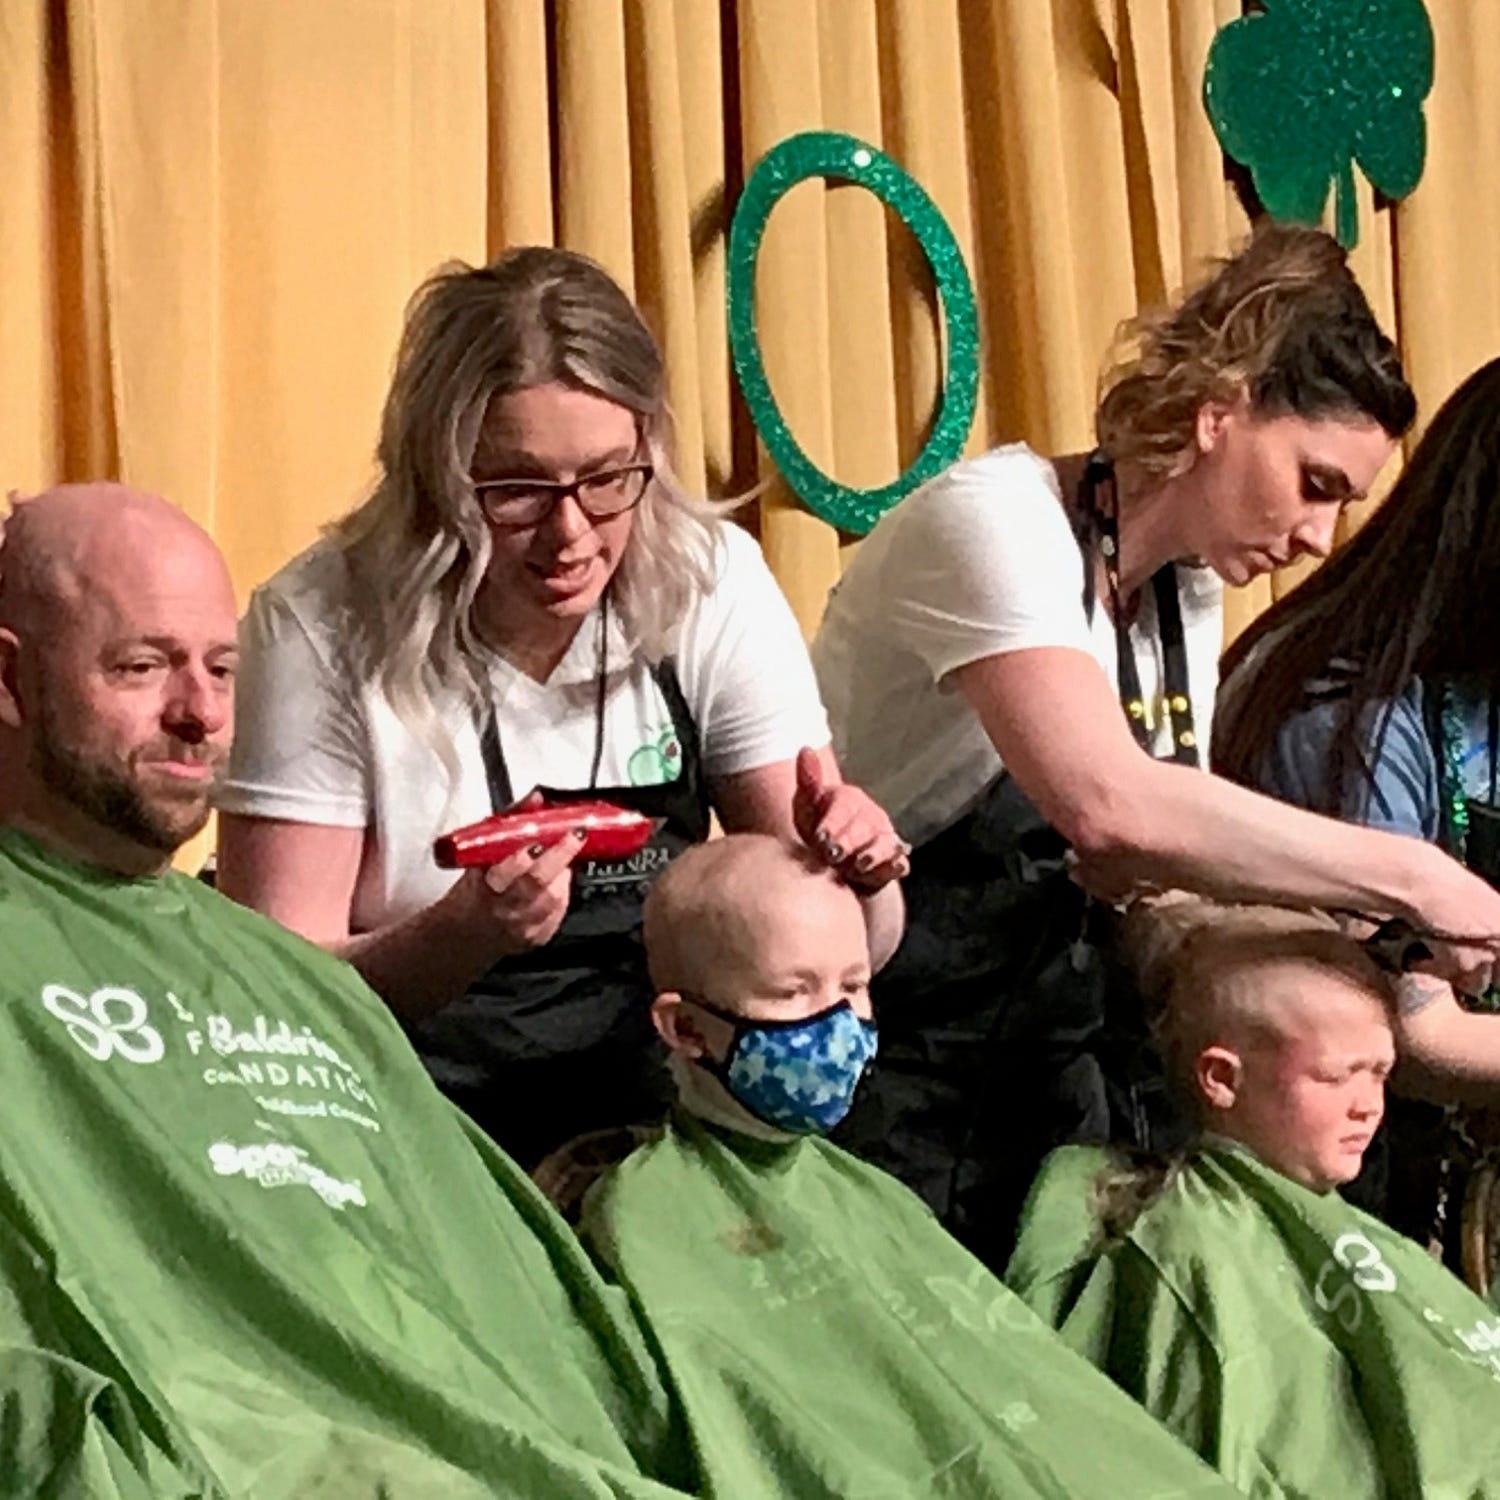 St. Baldrick's shavee: 'Some people are bald, but not by choice'